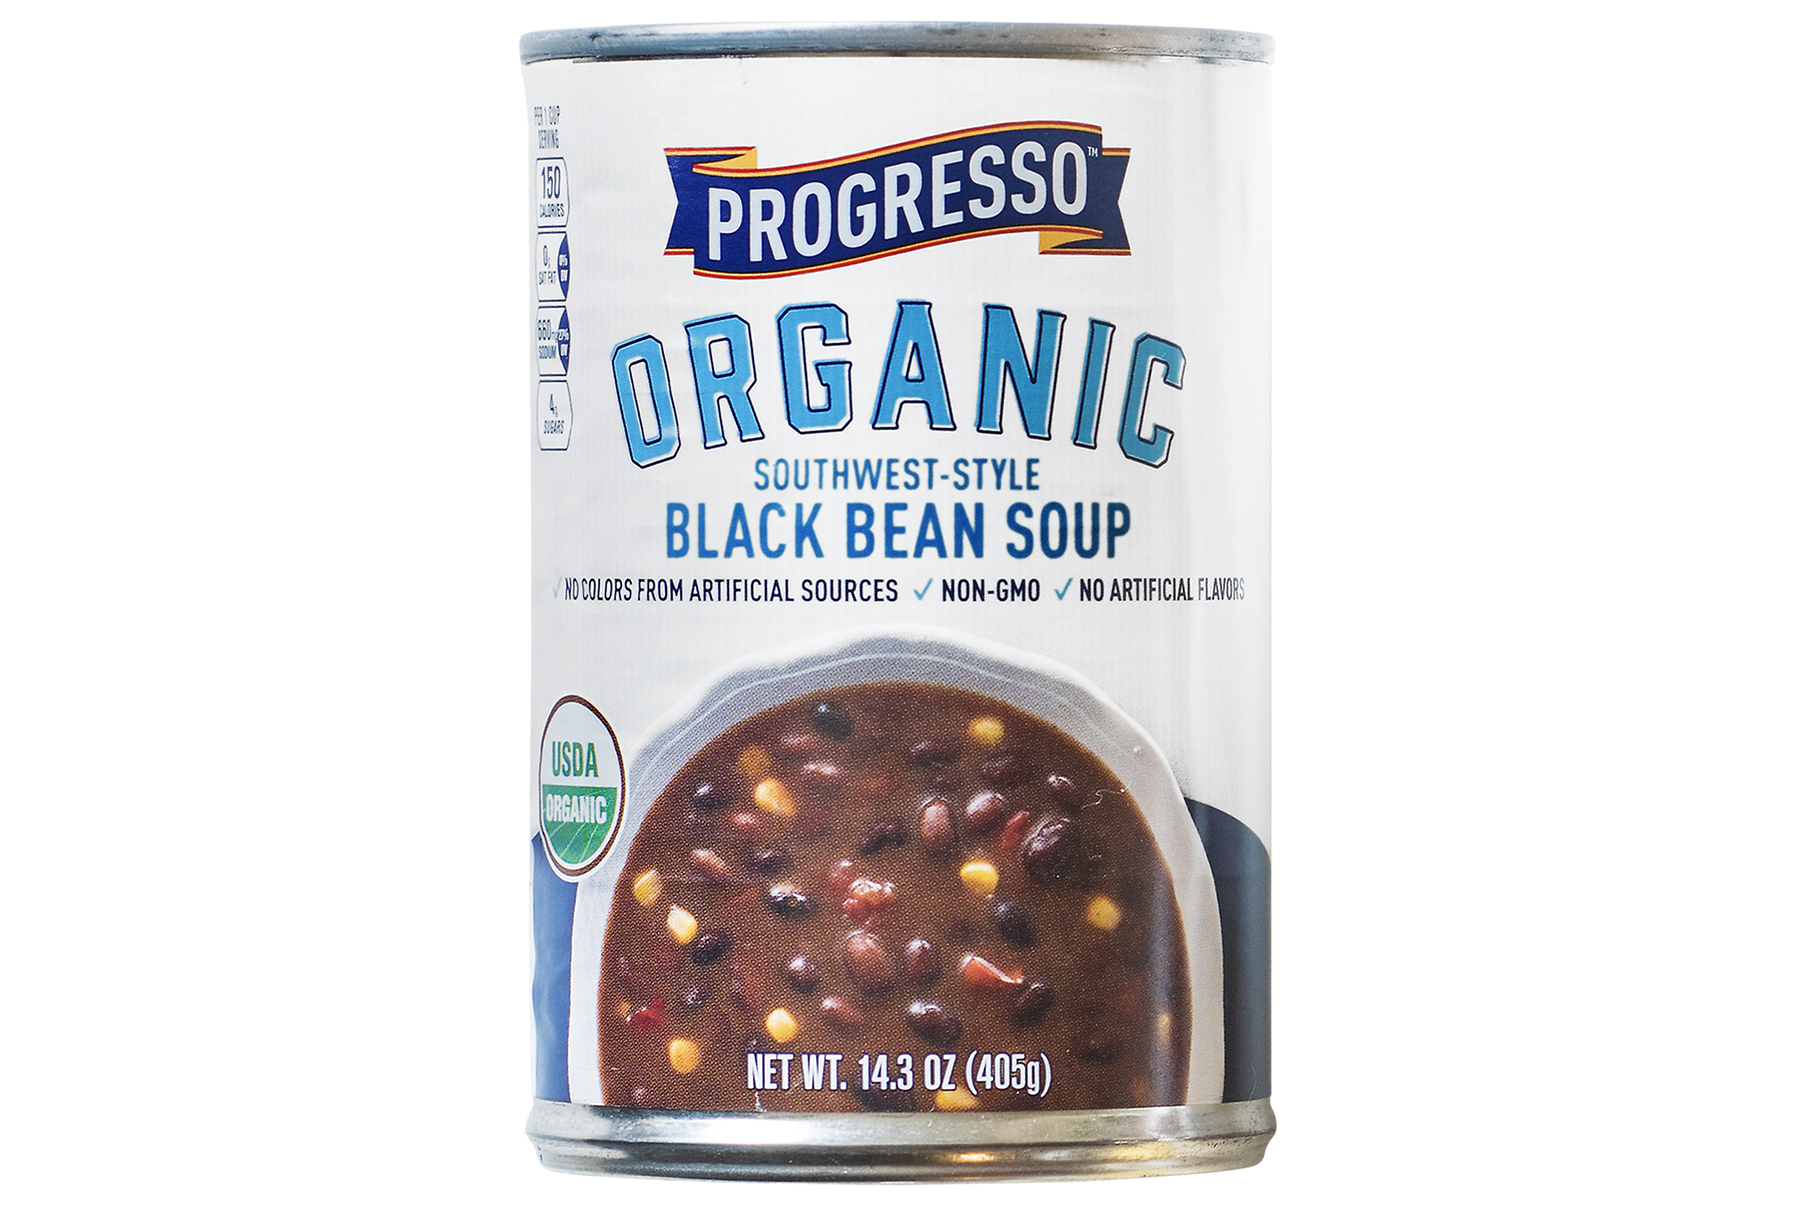 Progresso Organic Southwest-Style Black Bean Soup